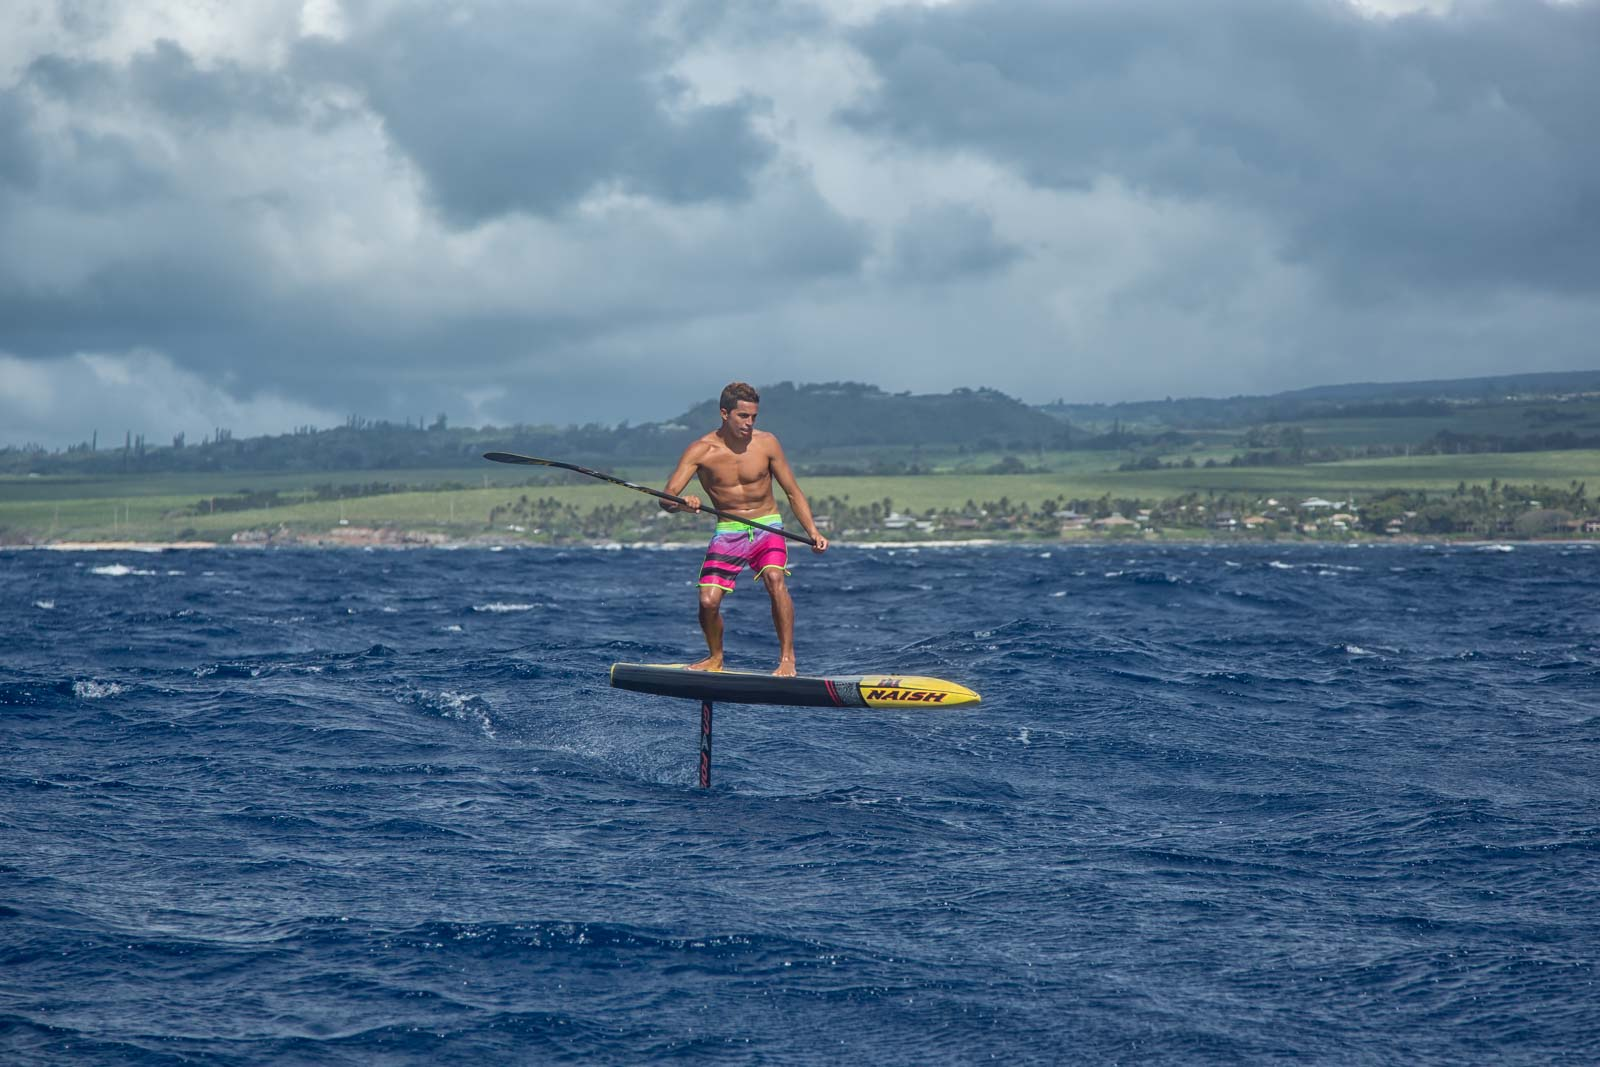 Three Reasons Why Kai Lenny S Sup Foil Broke The Internet